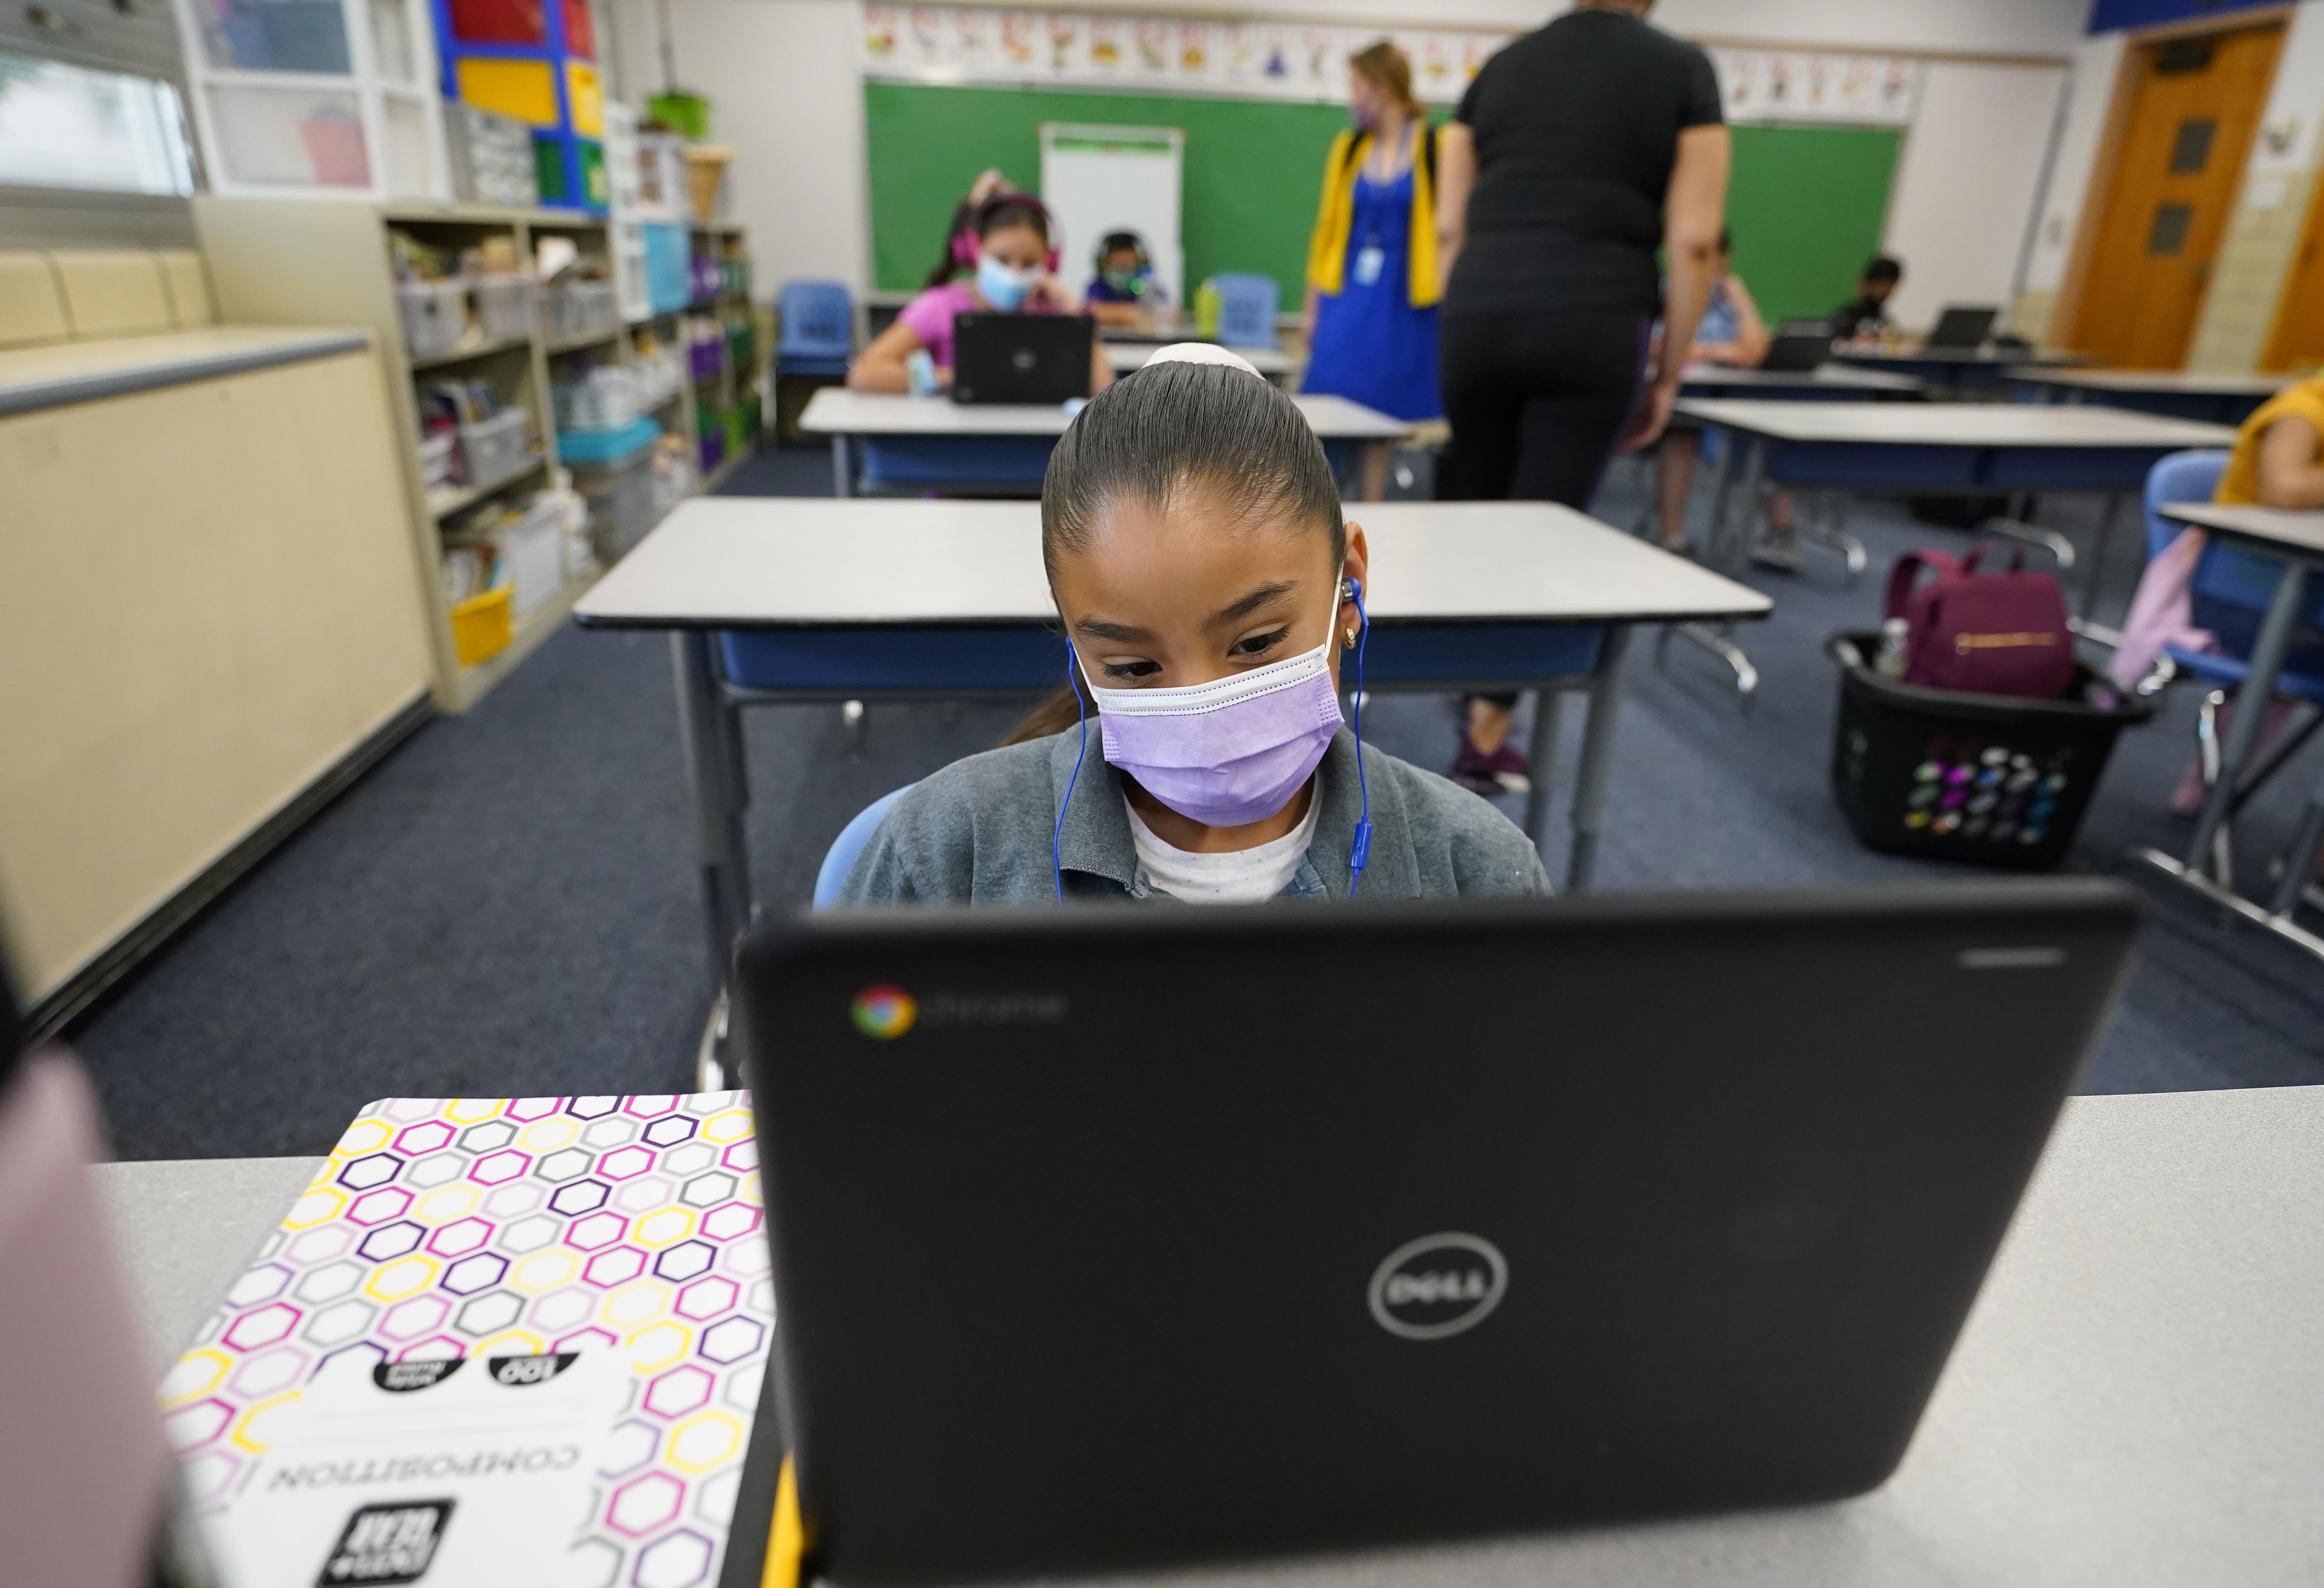 A masked girl works on her laptop at a learning center.